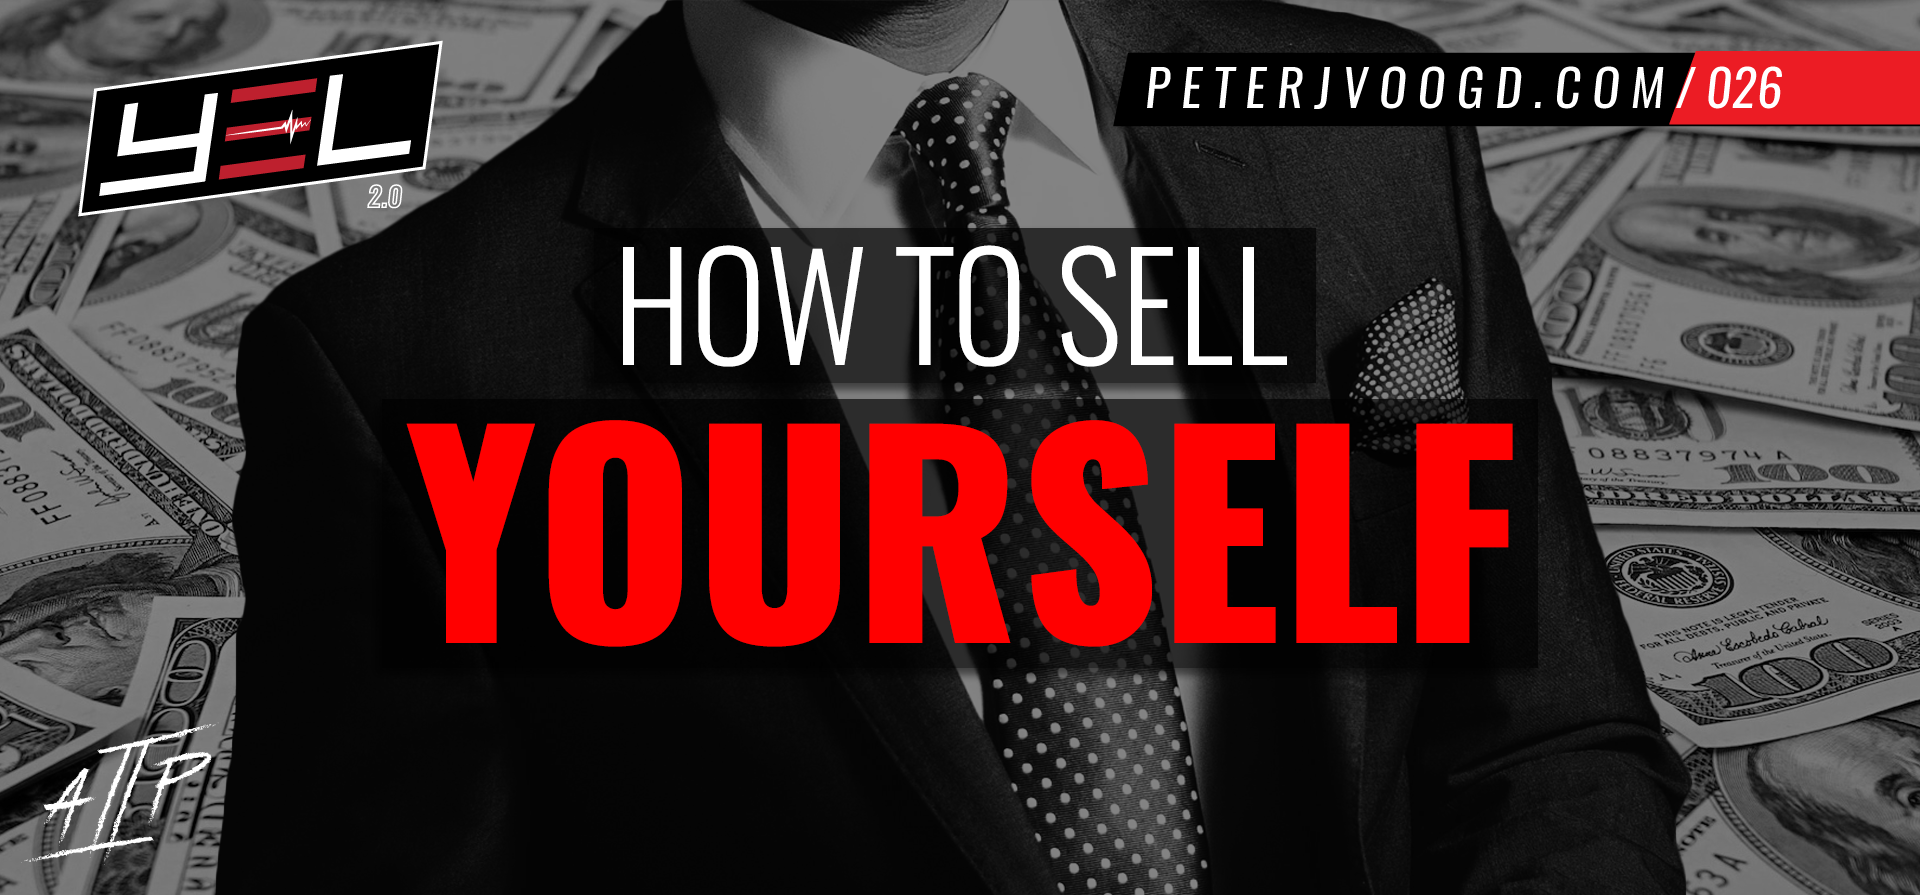 how to sell yourself peter j voogd 20 oct how to sell yourself